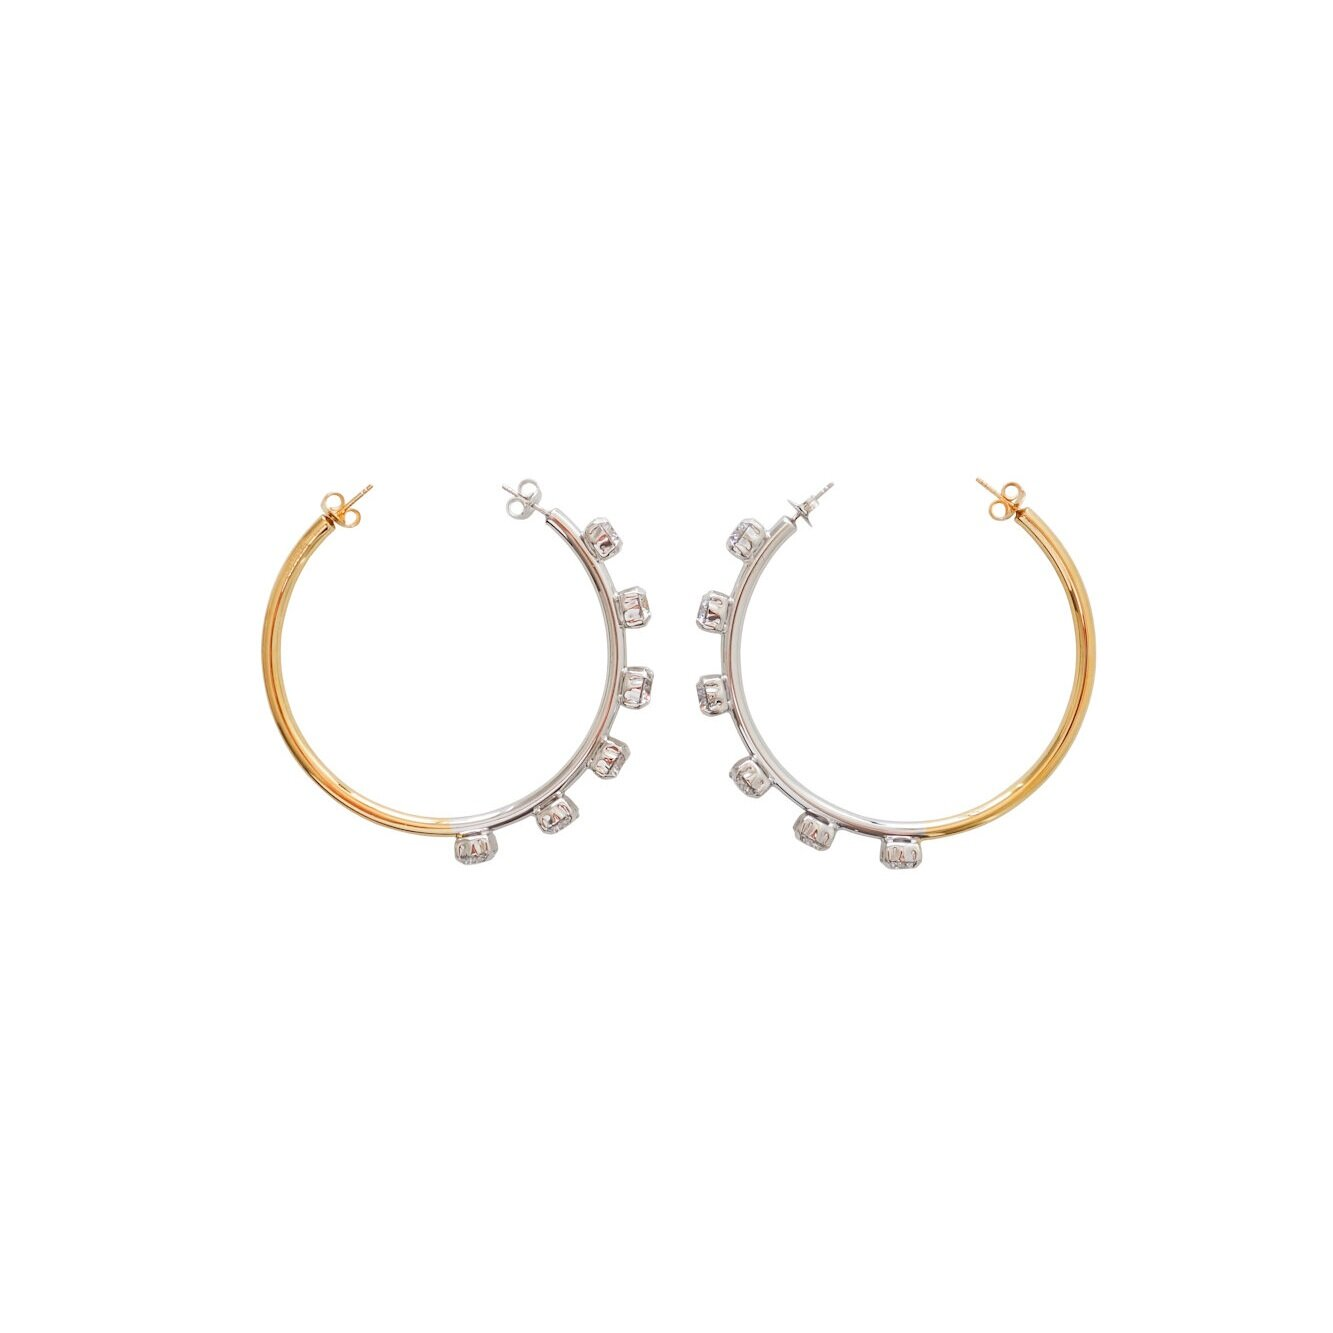 Vice Versa Hoops $769 - Dual wearButterfly backings on both ends, can be worn both waysGold plated silver 925 | Silver 925 | Zirconia SwarovskiMade in Italy